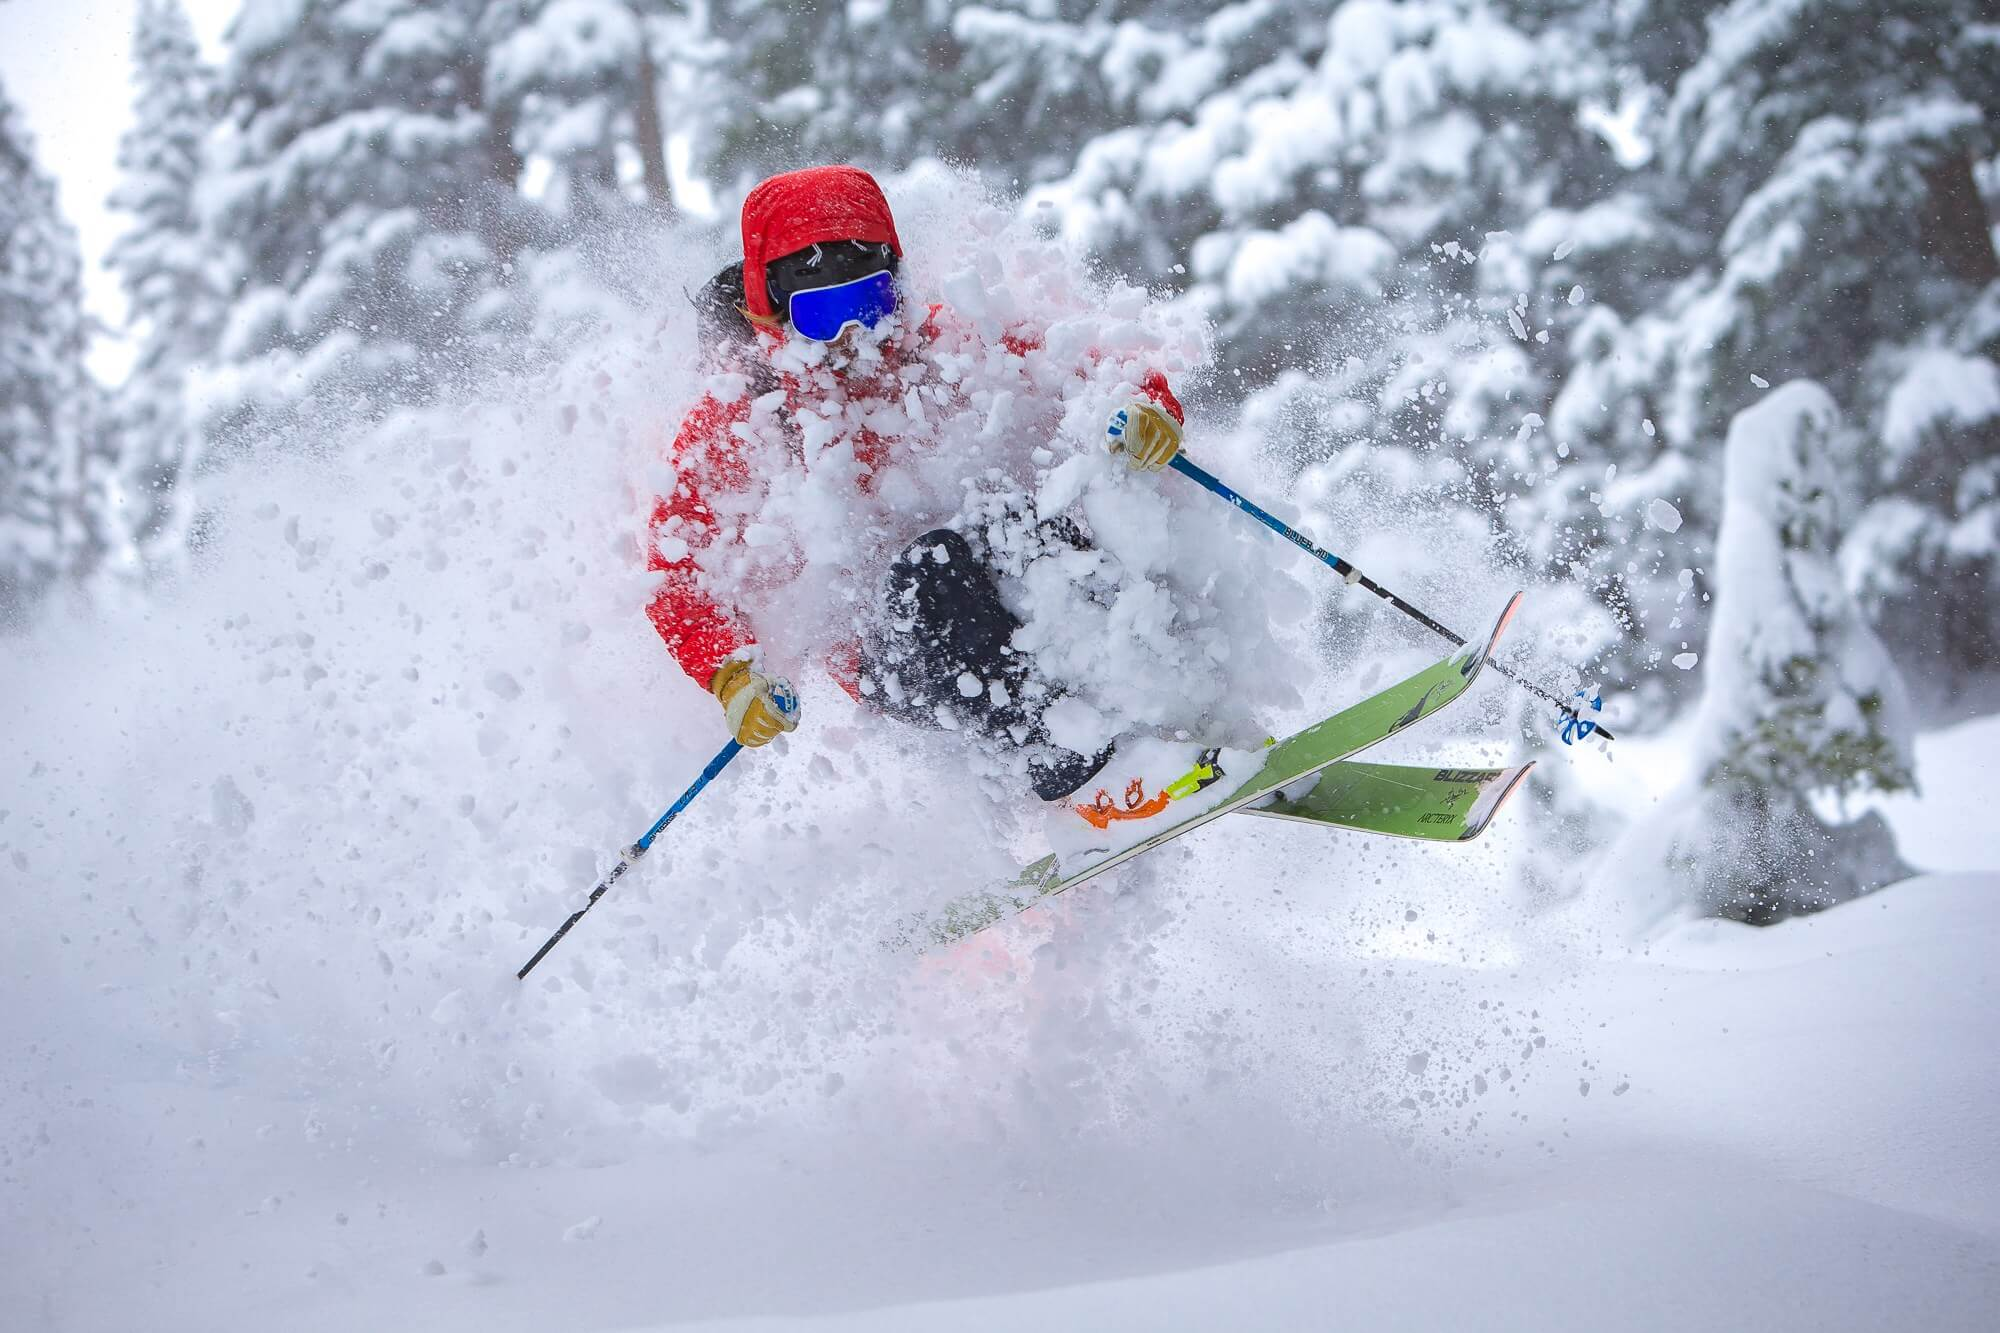 Skier enjoying the soft powder at the great Canadian heli skiing company called Northern Escape